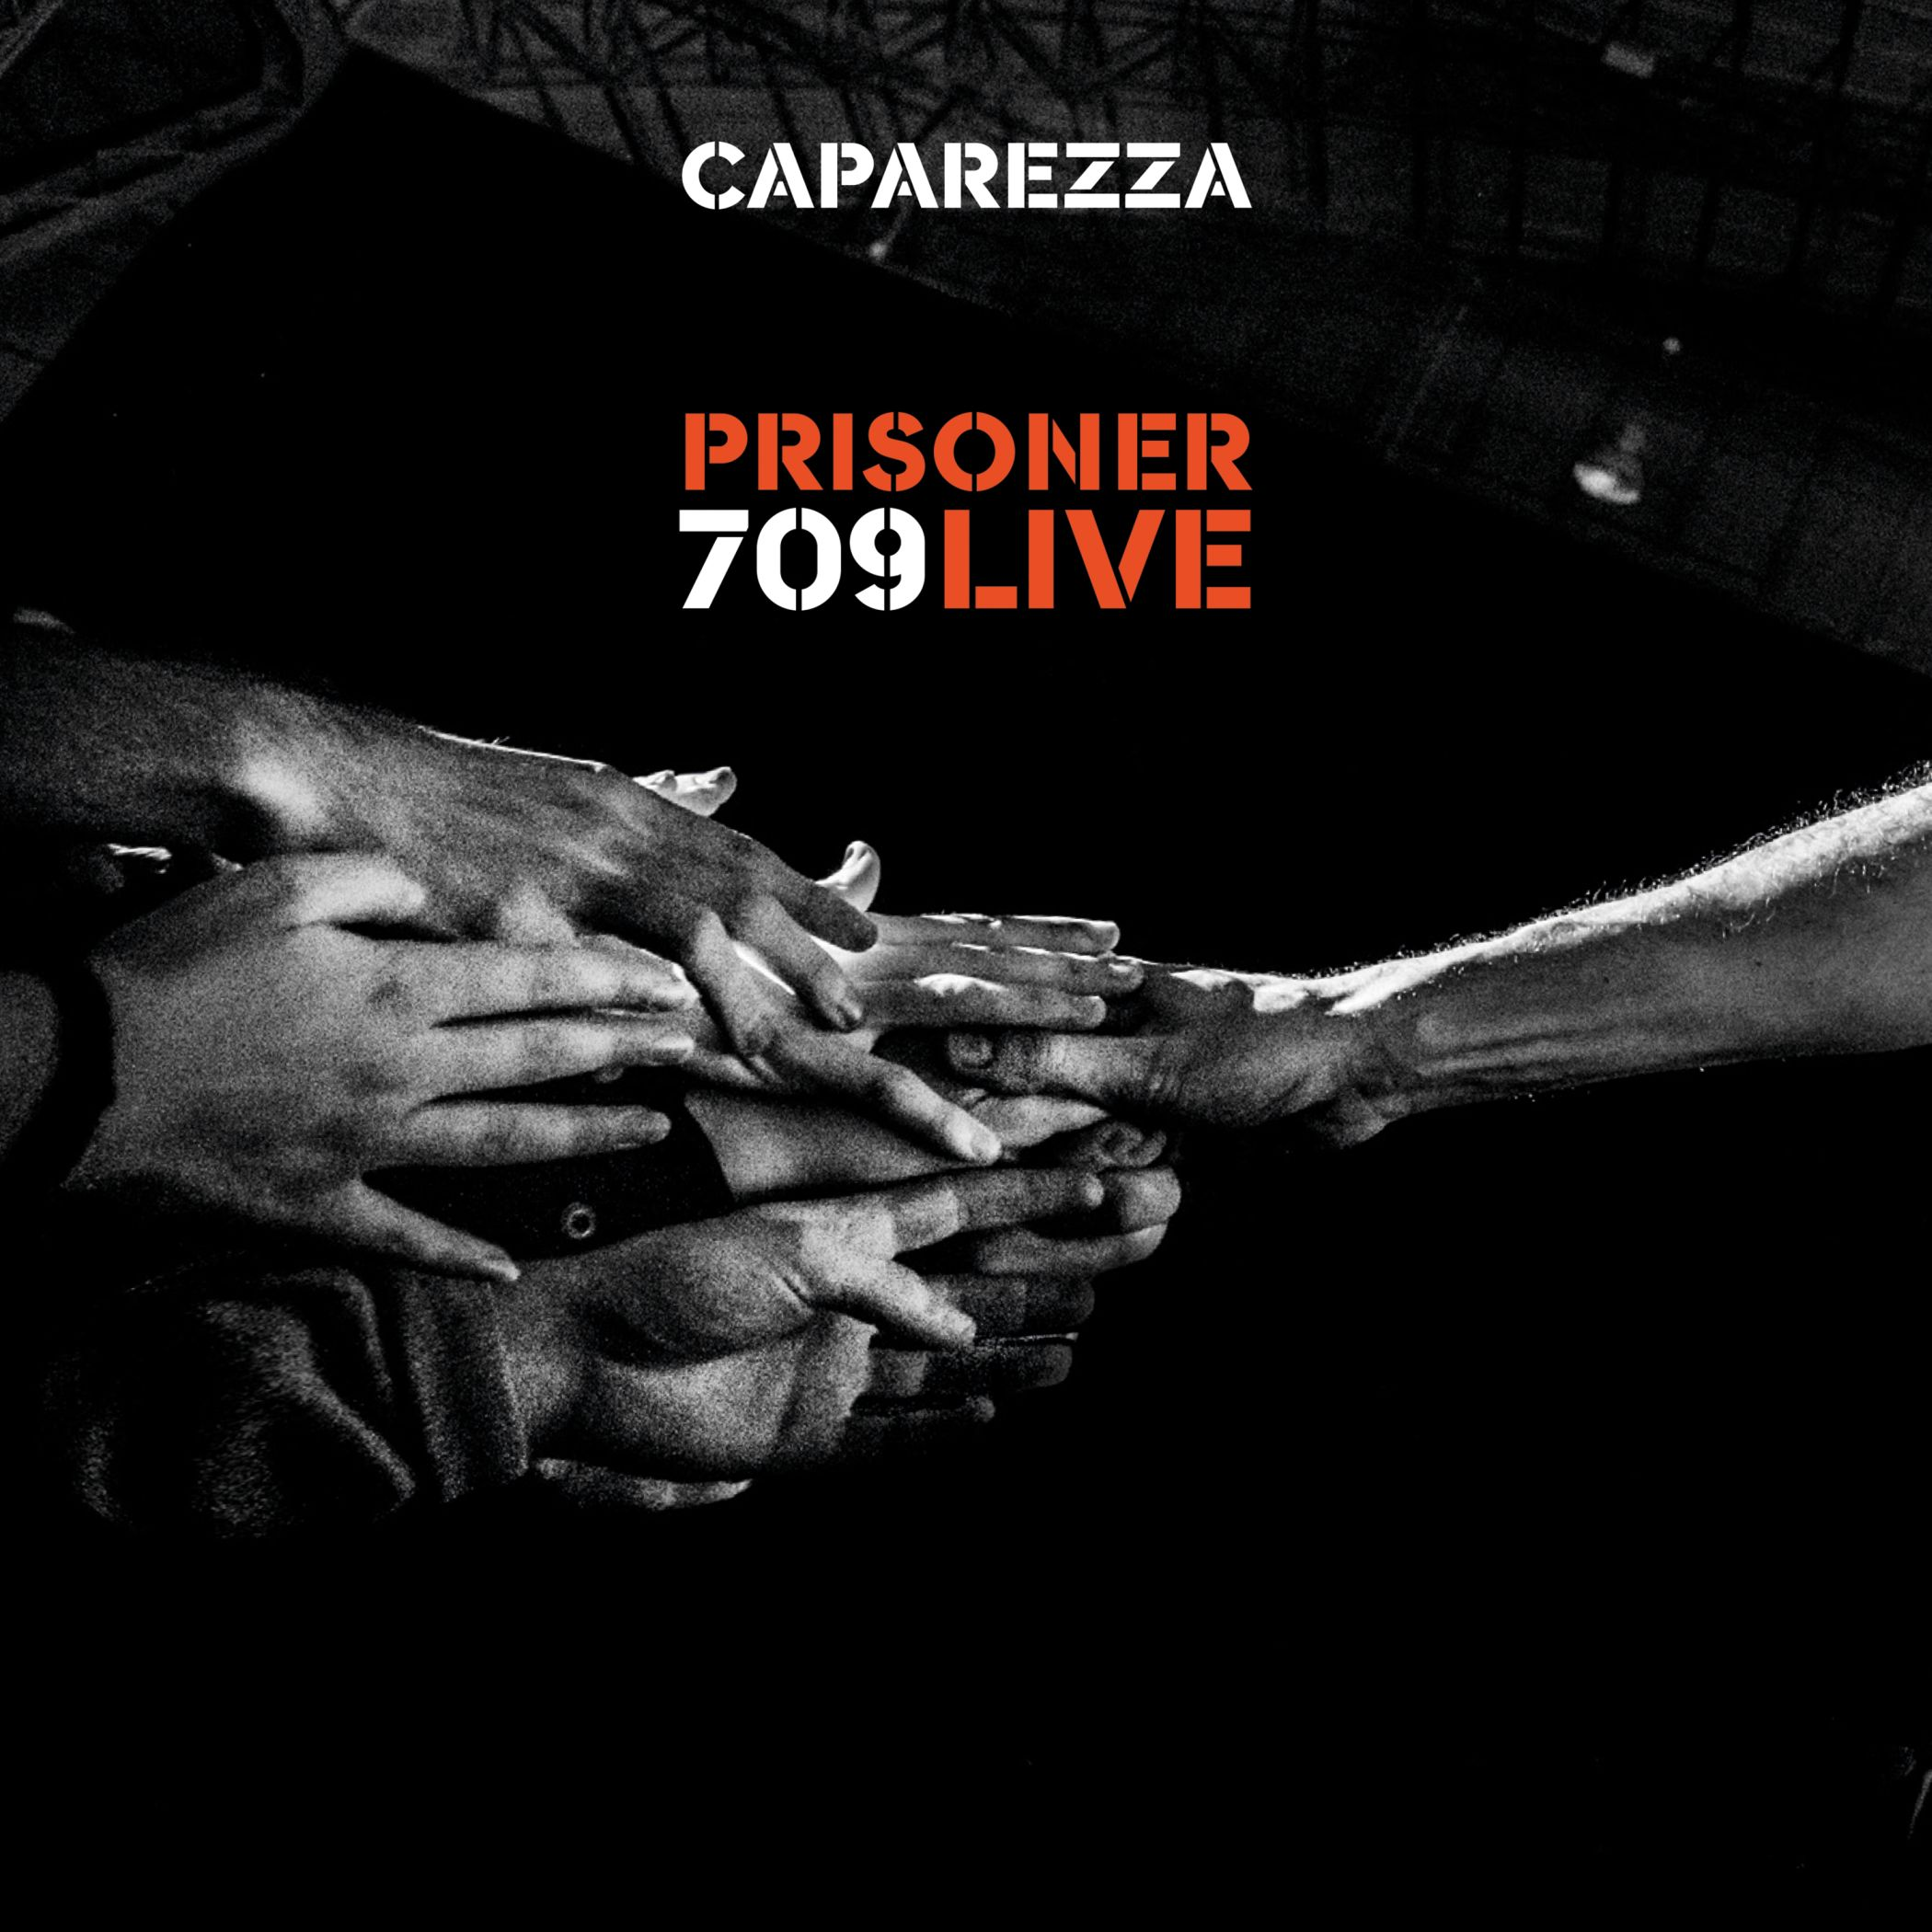 BOOKLET_CAPAREZZA.indd